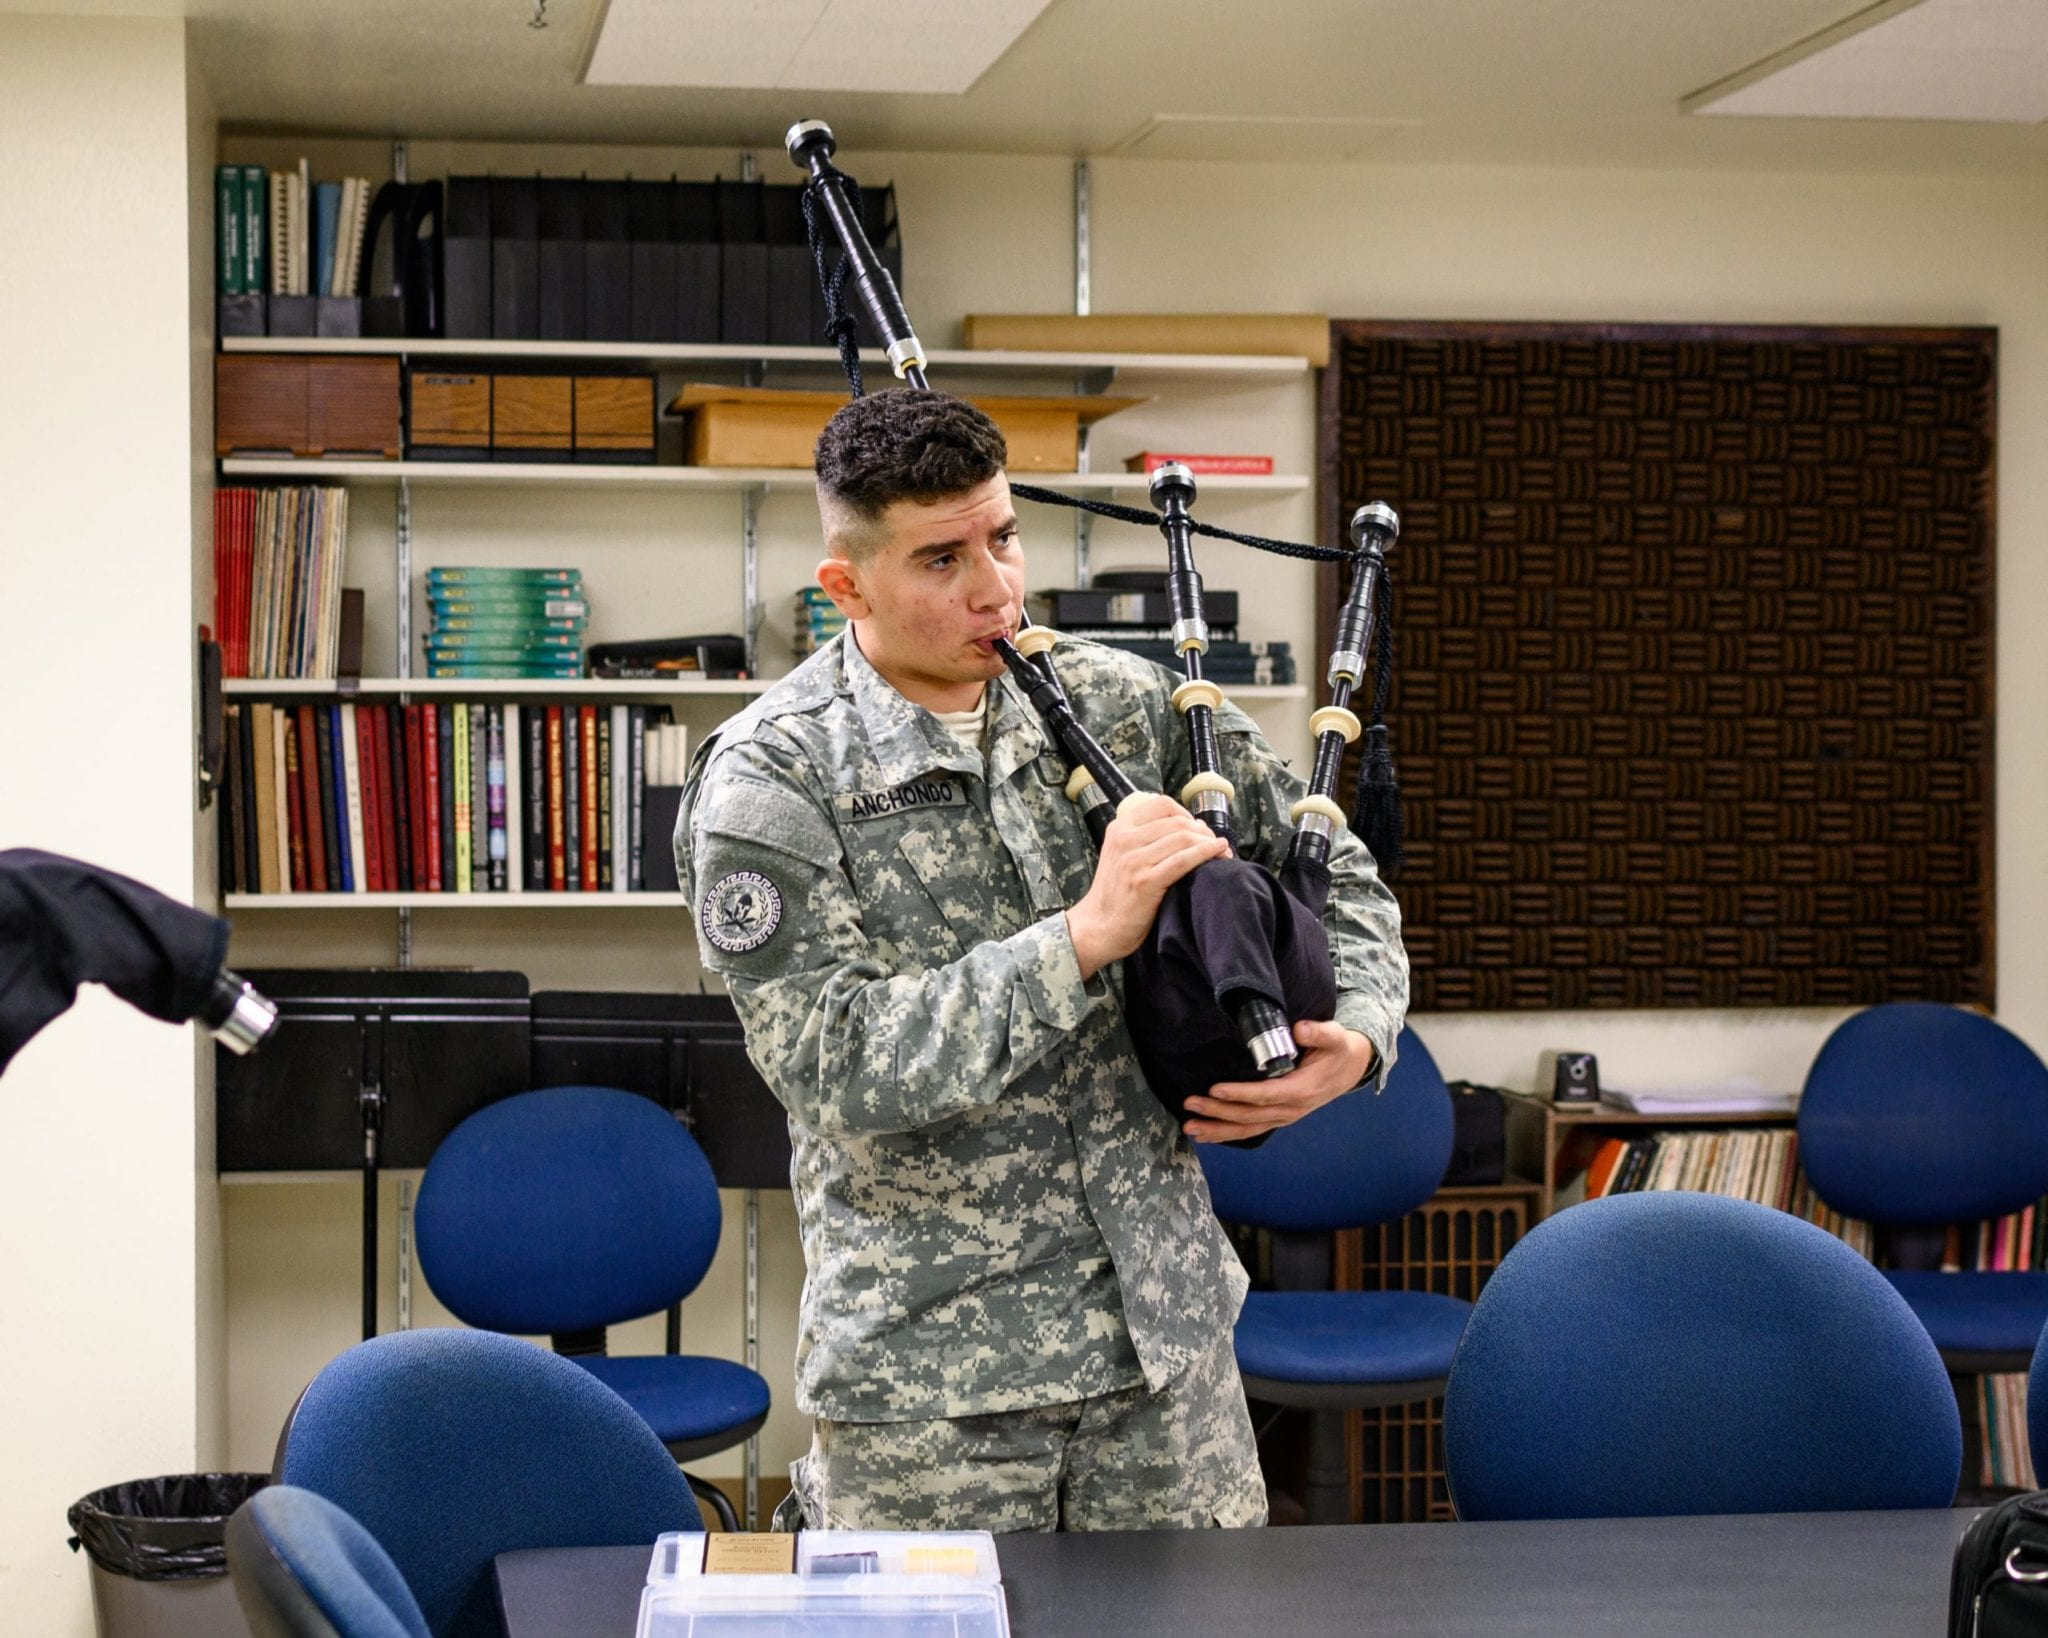 cadet playing bagpipe